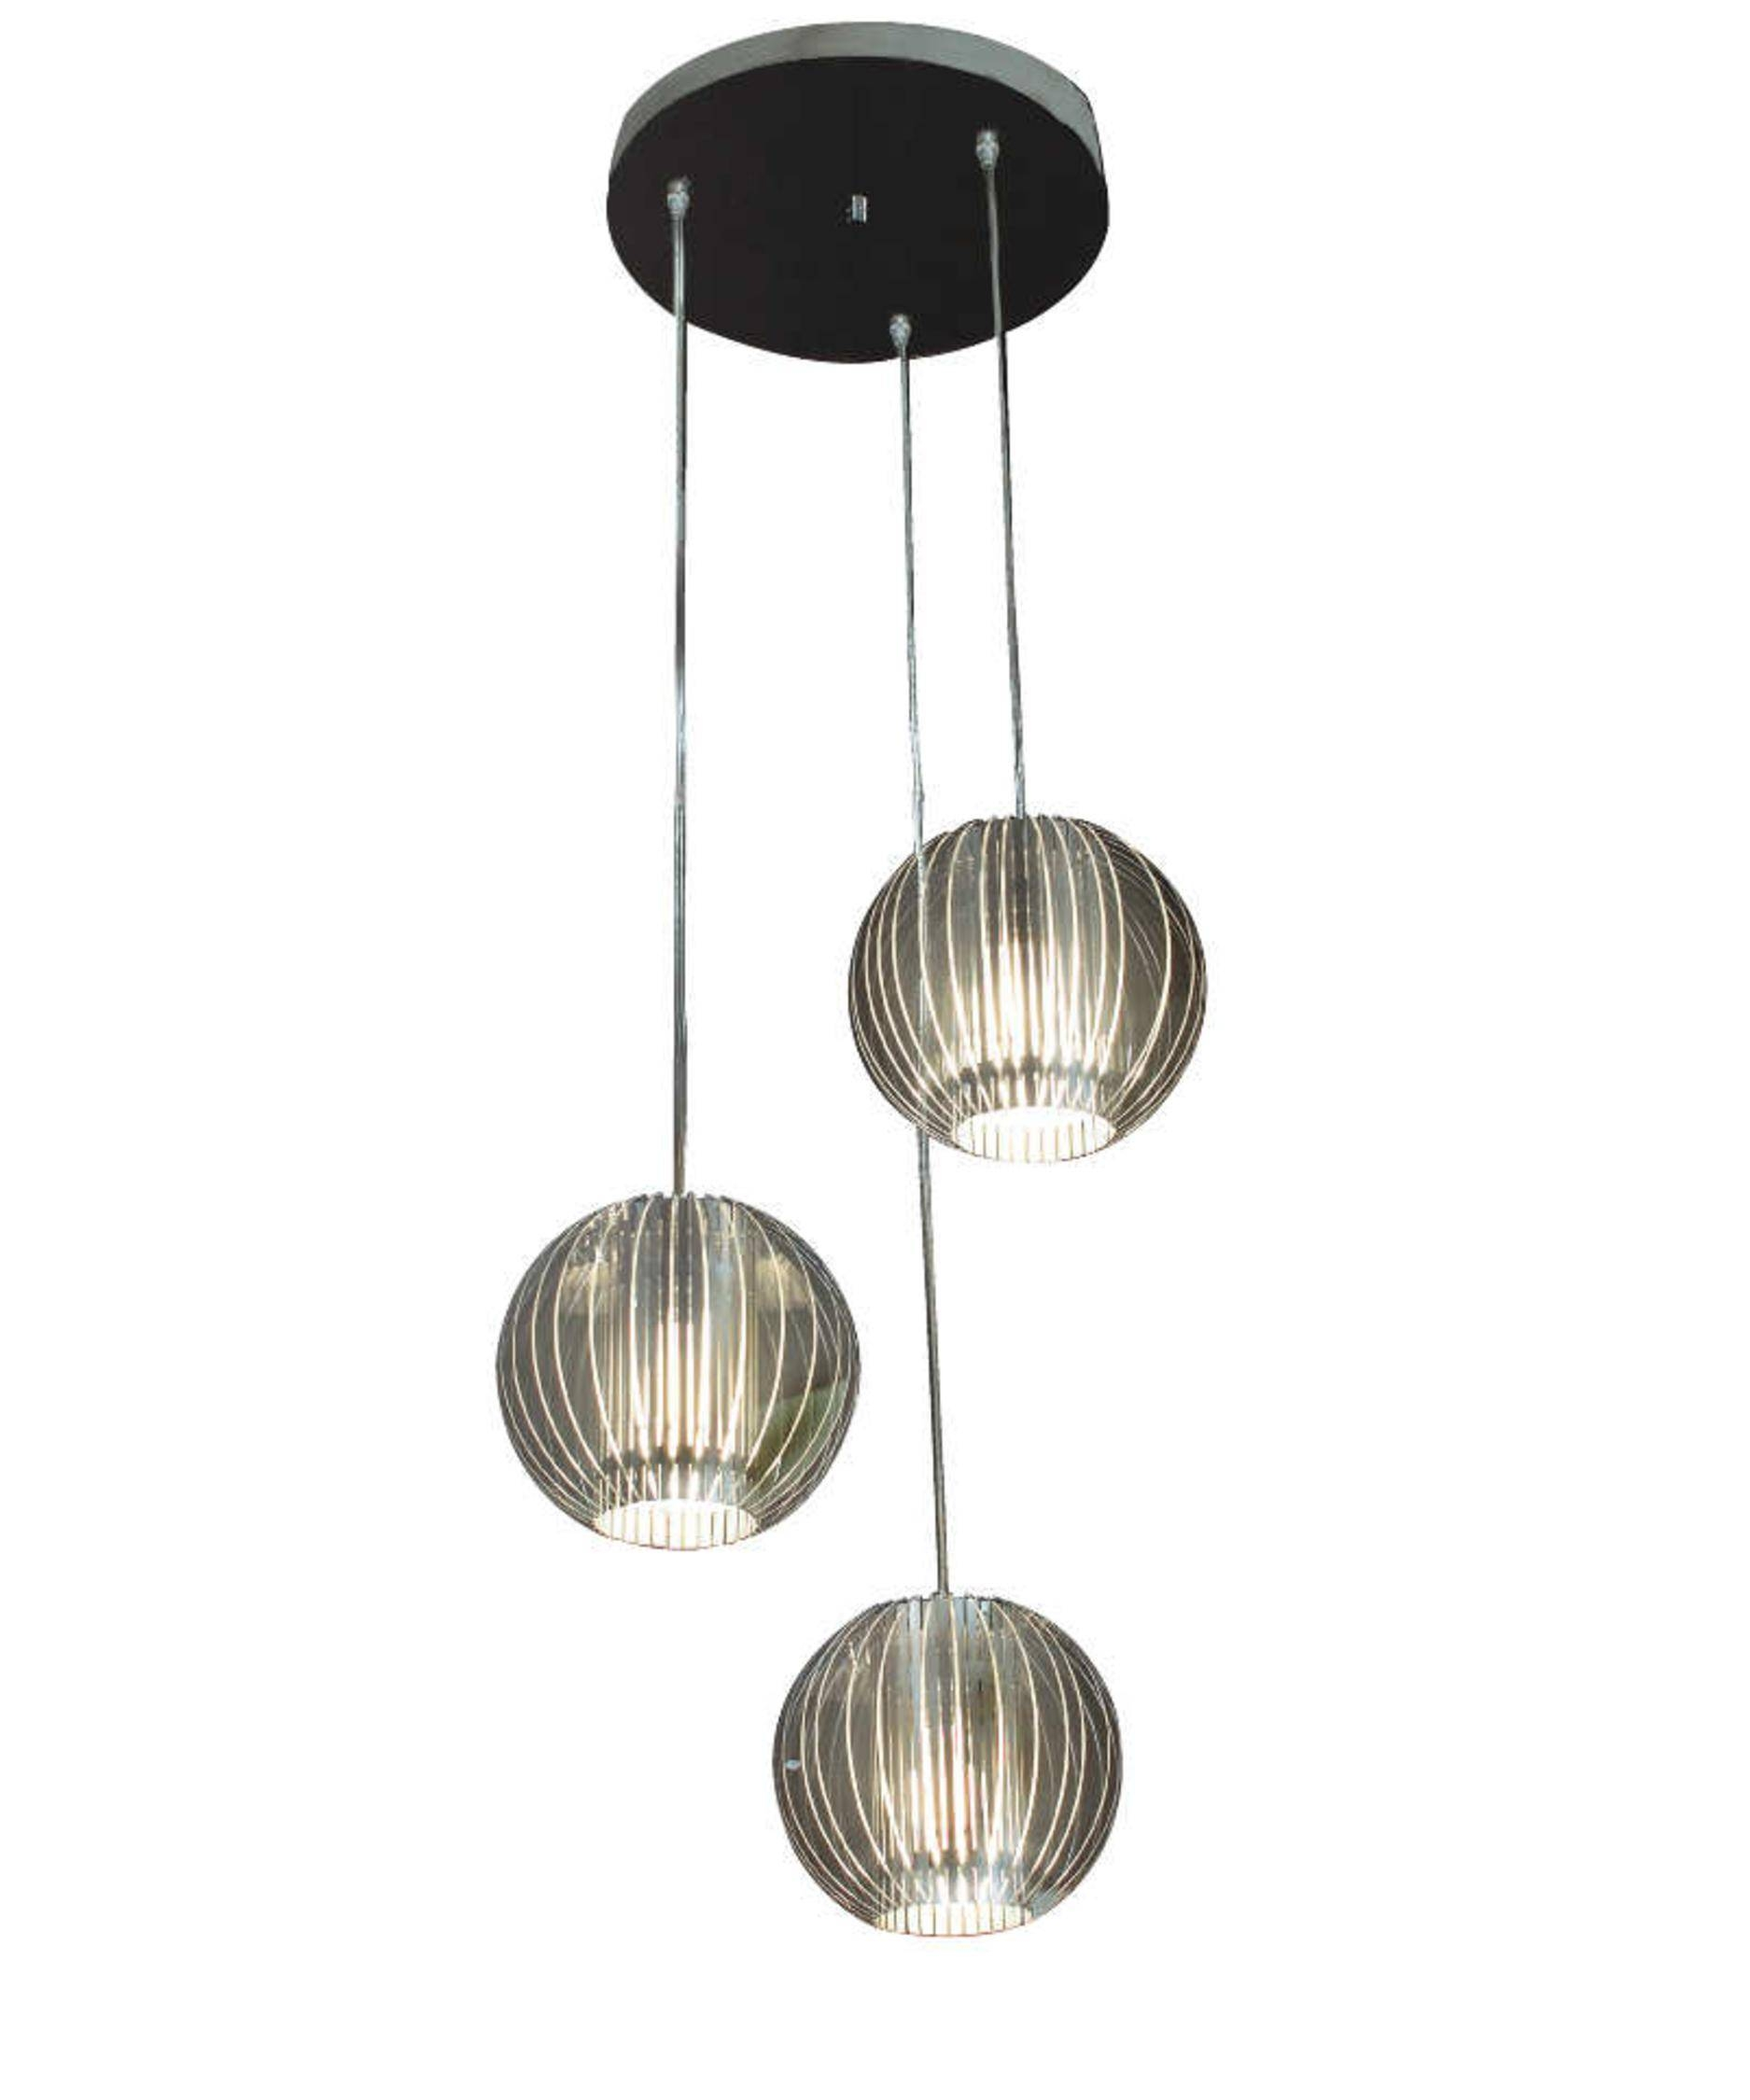 Trend Lighting Tp6300-3 Phoenix 14 Inch Wide 3 Light Multi Pendant with regard to 3 Pendant Lights Kits (Image 13 of 15)